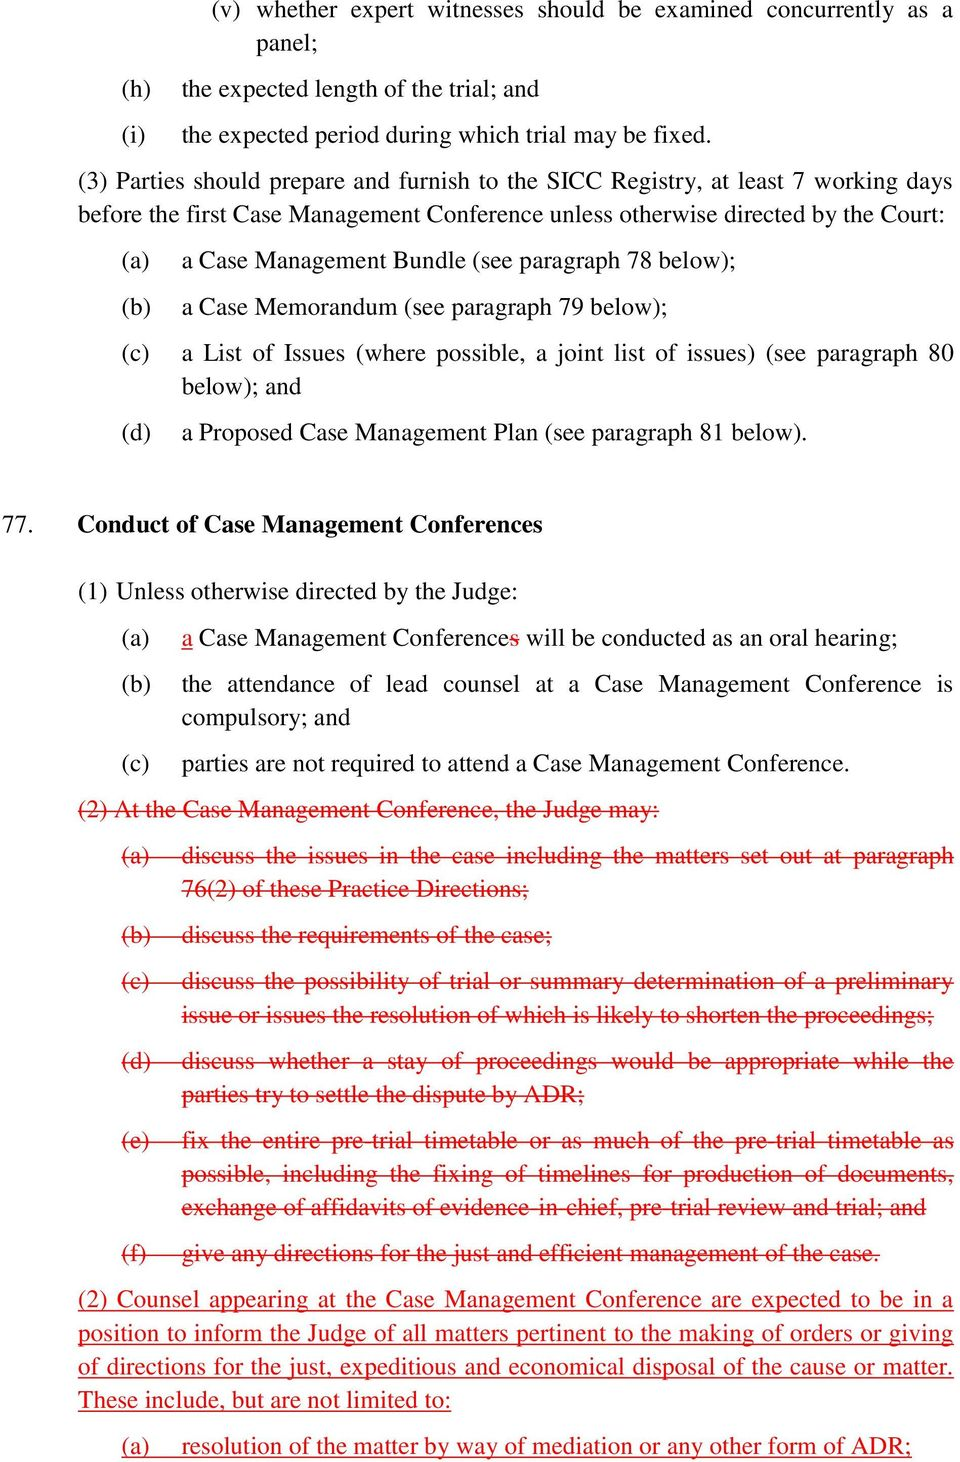 paragraph 78 below); a Case Memorandum (see paragraph 79 below); (c) a List of Issues (where possible, a joint list of issues) (see paragraph 80 below); and (d) a Proposed Case Management Plan (see